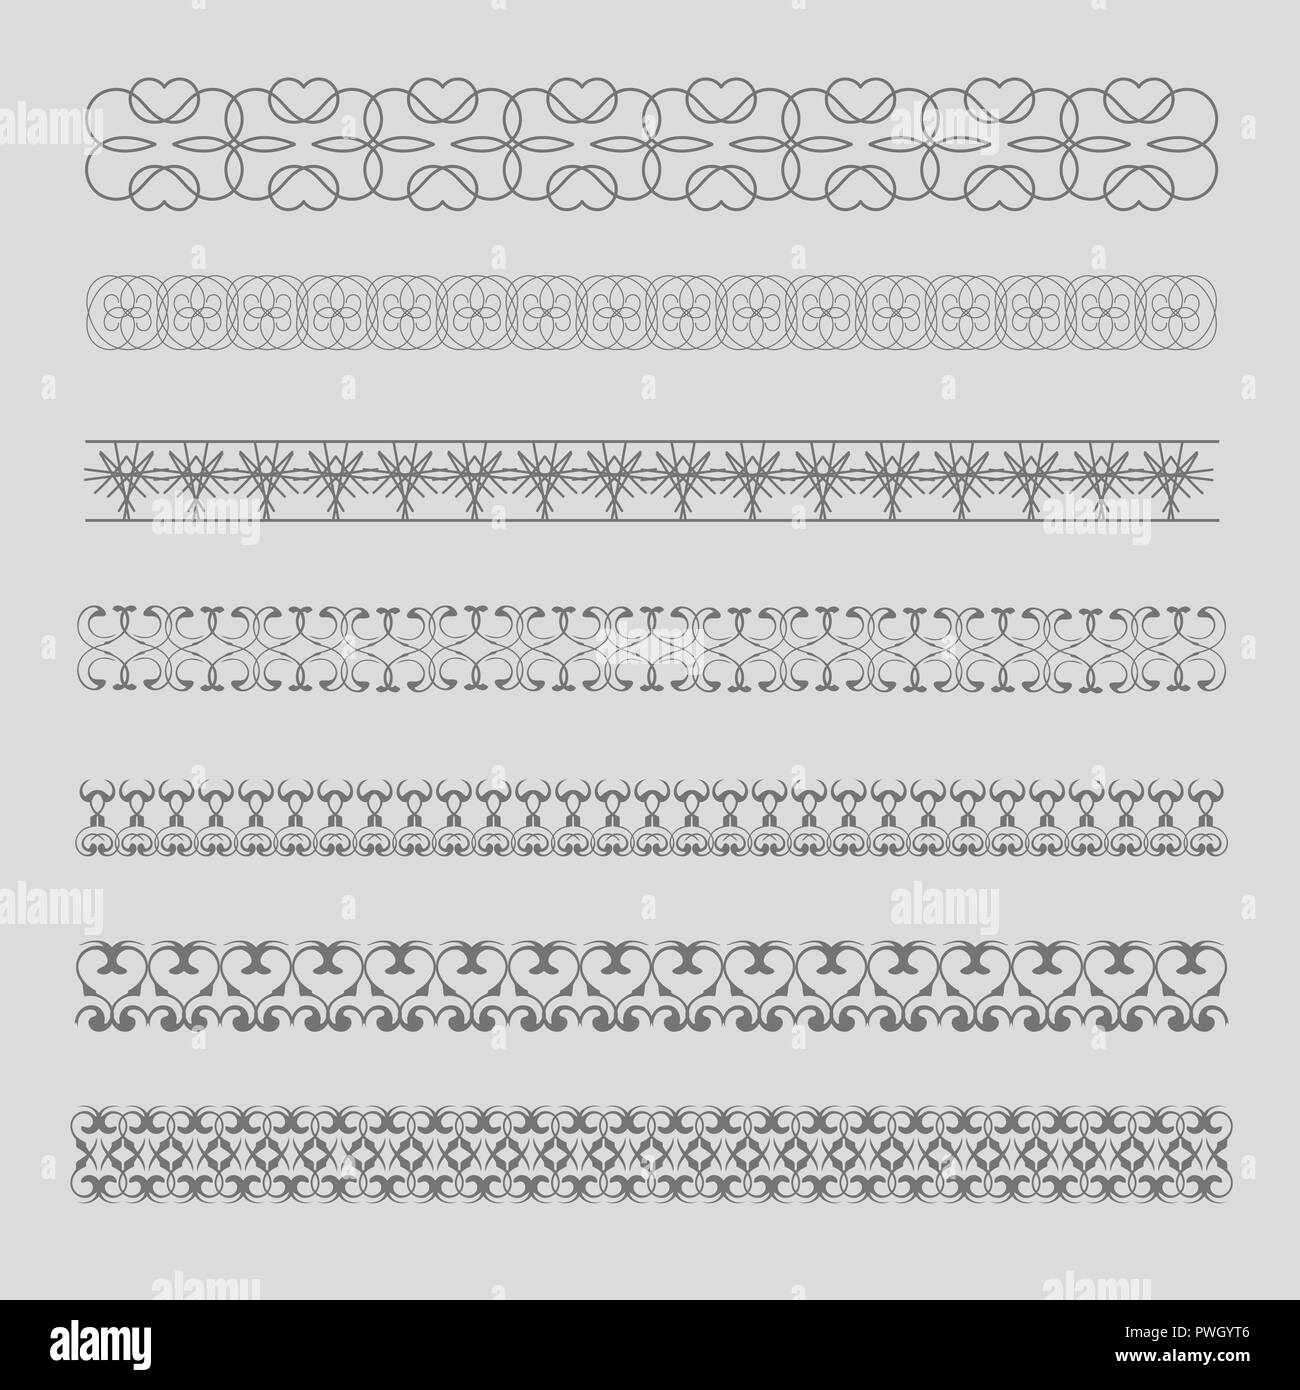 Decorative Borders. Patterned, frame for  invitations, postcards and other printed products. - Stock Image